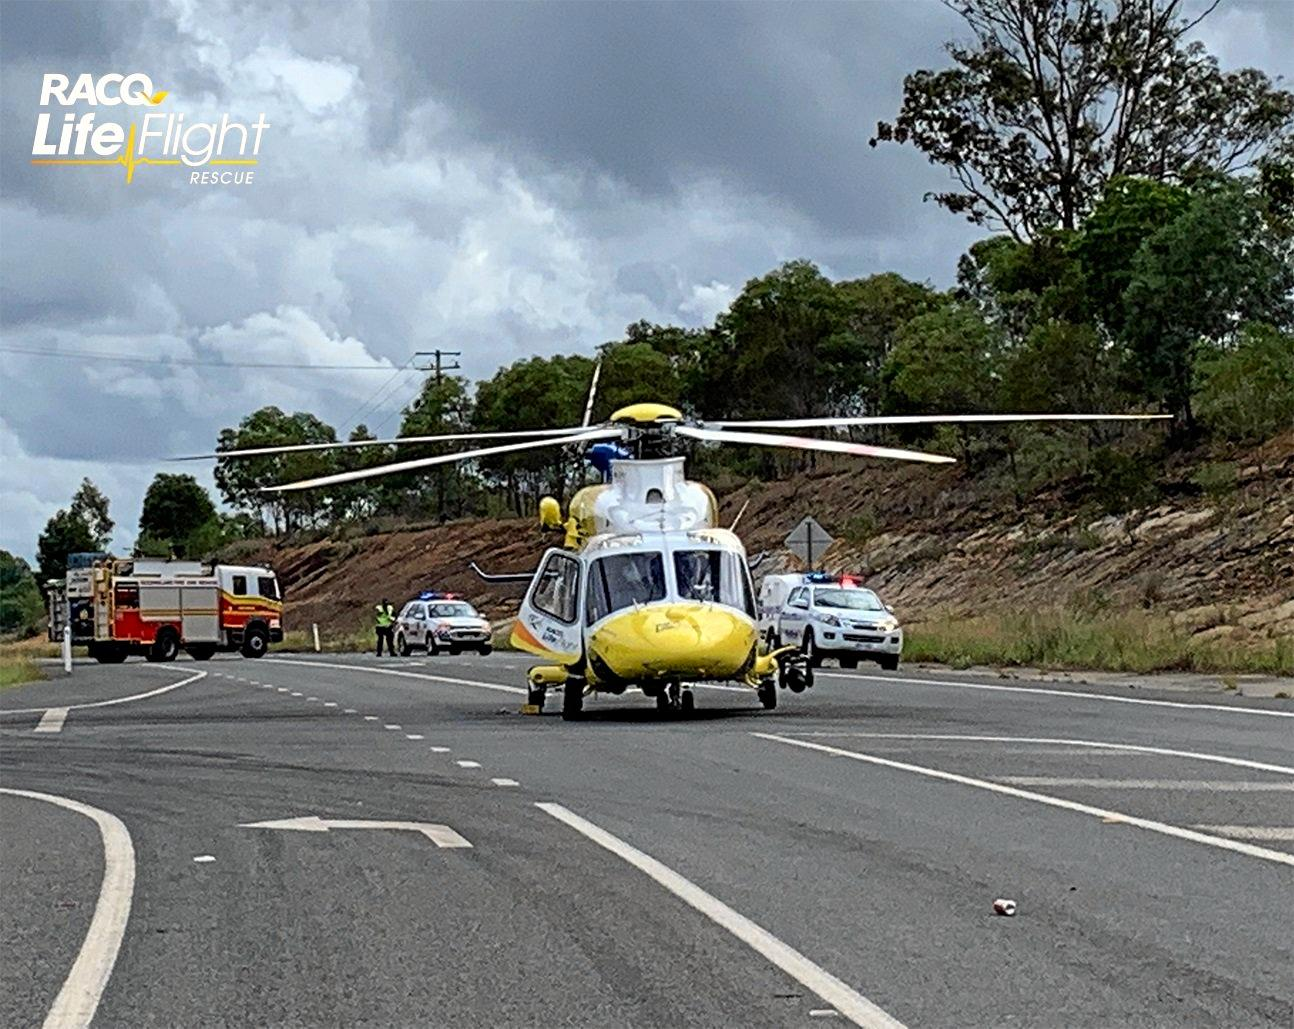 A Stanthorpe woman is in a critical condition following a crash on the Boonah-Beaudesert Road, Wyaralong at about 11am yesterday.